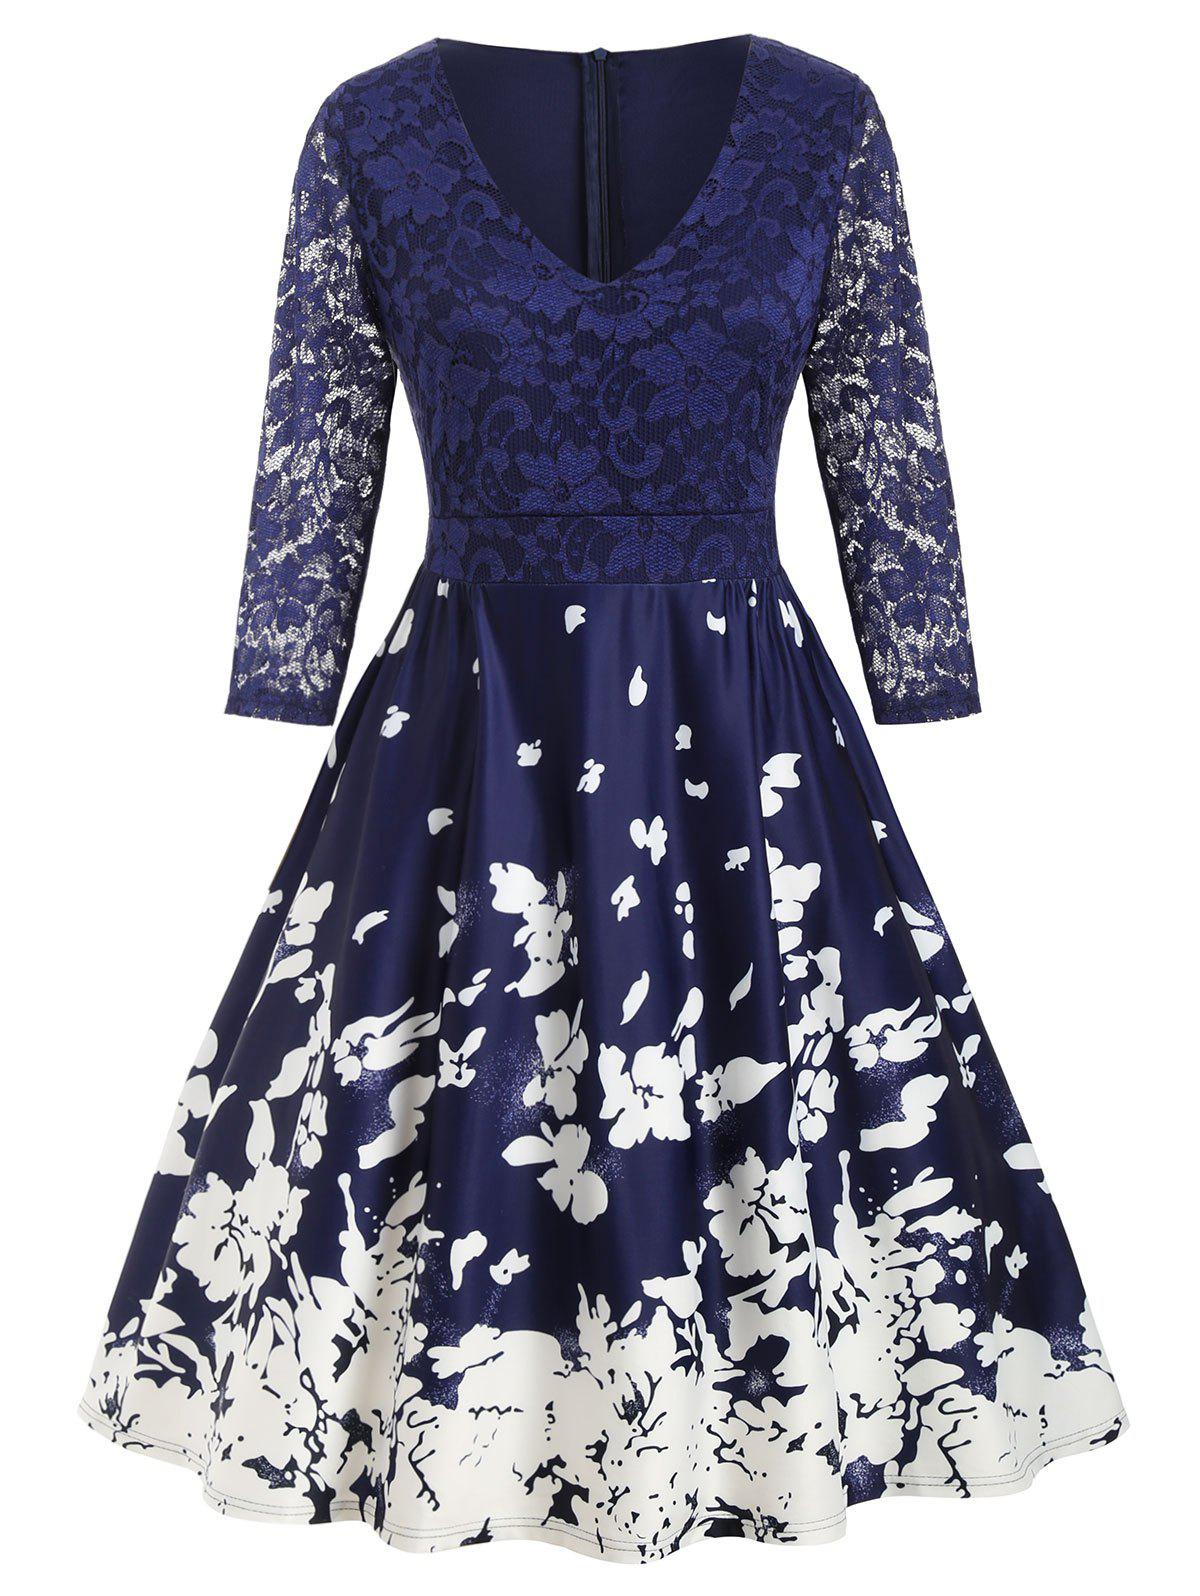 Plus Size Floral Print Lace Insert Dress - DENIM DARK BLUE L